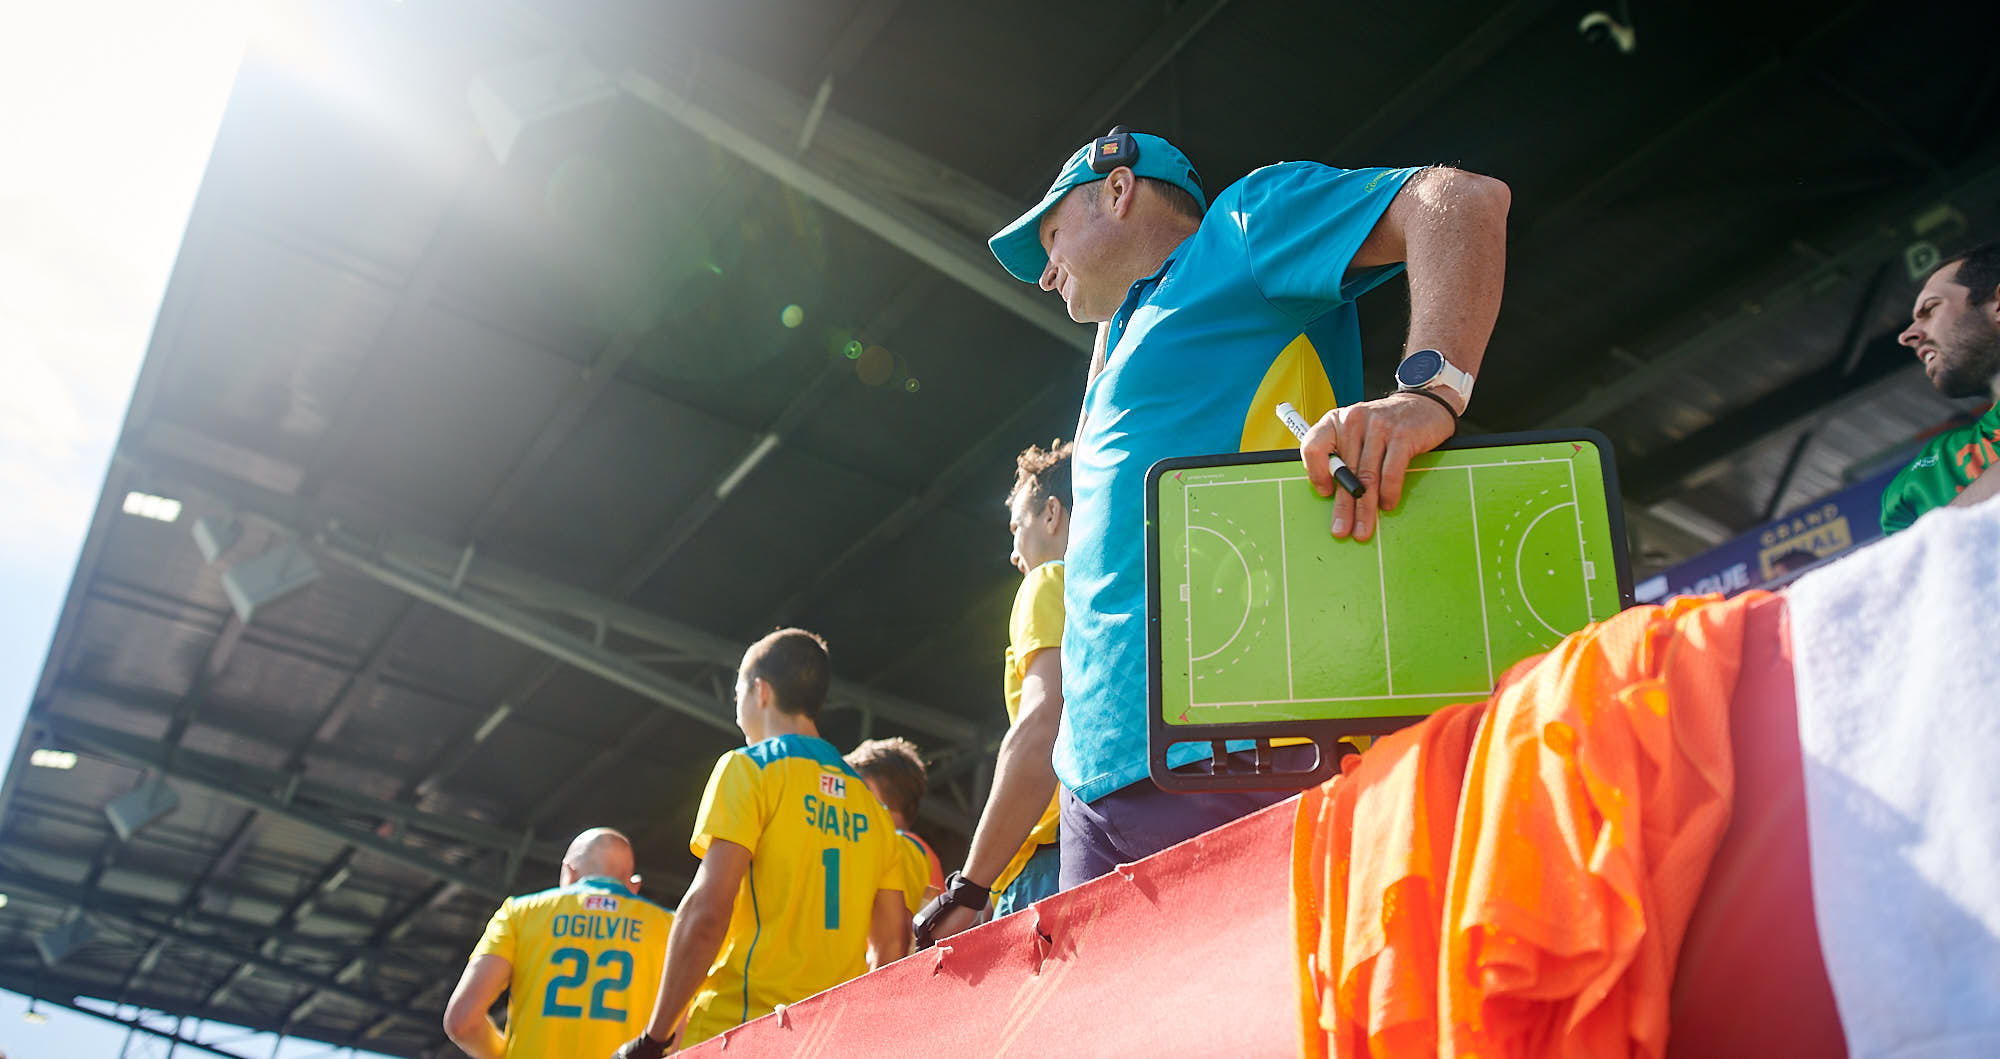 Australian national hockey team coach during the 2019 FIH Pro League Finals in Amsterdam